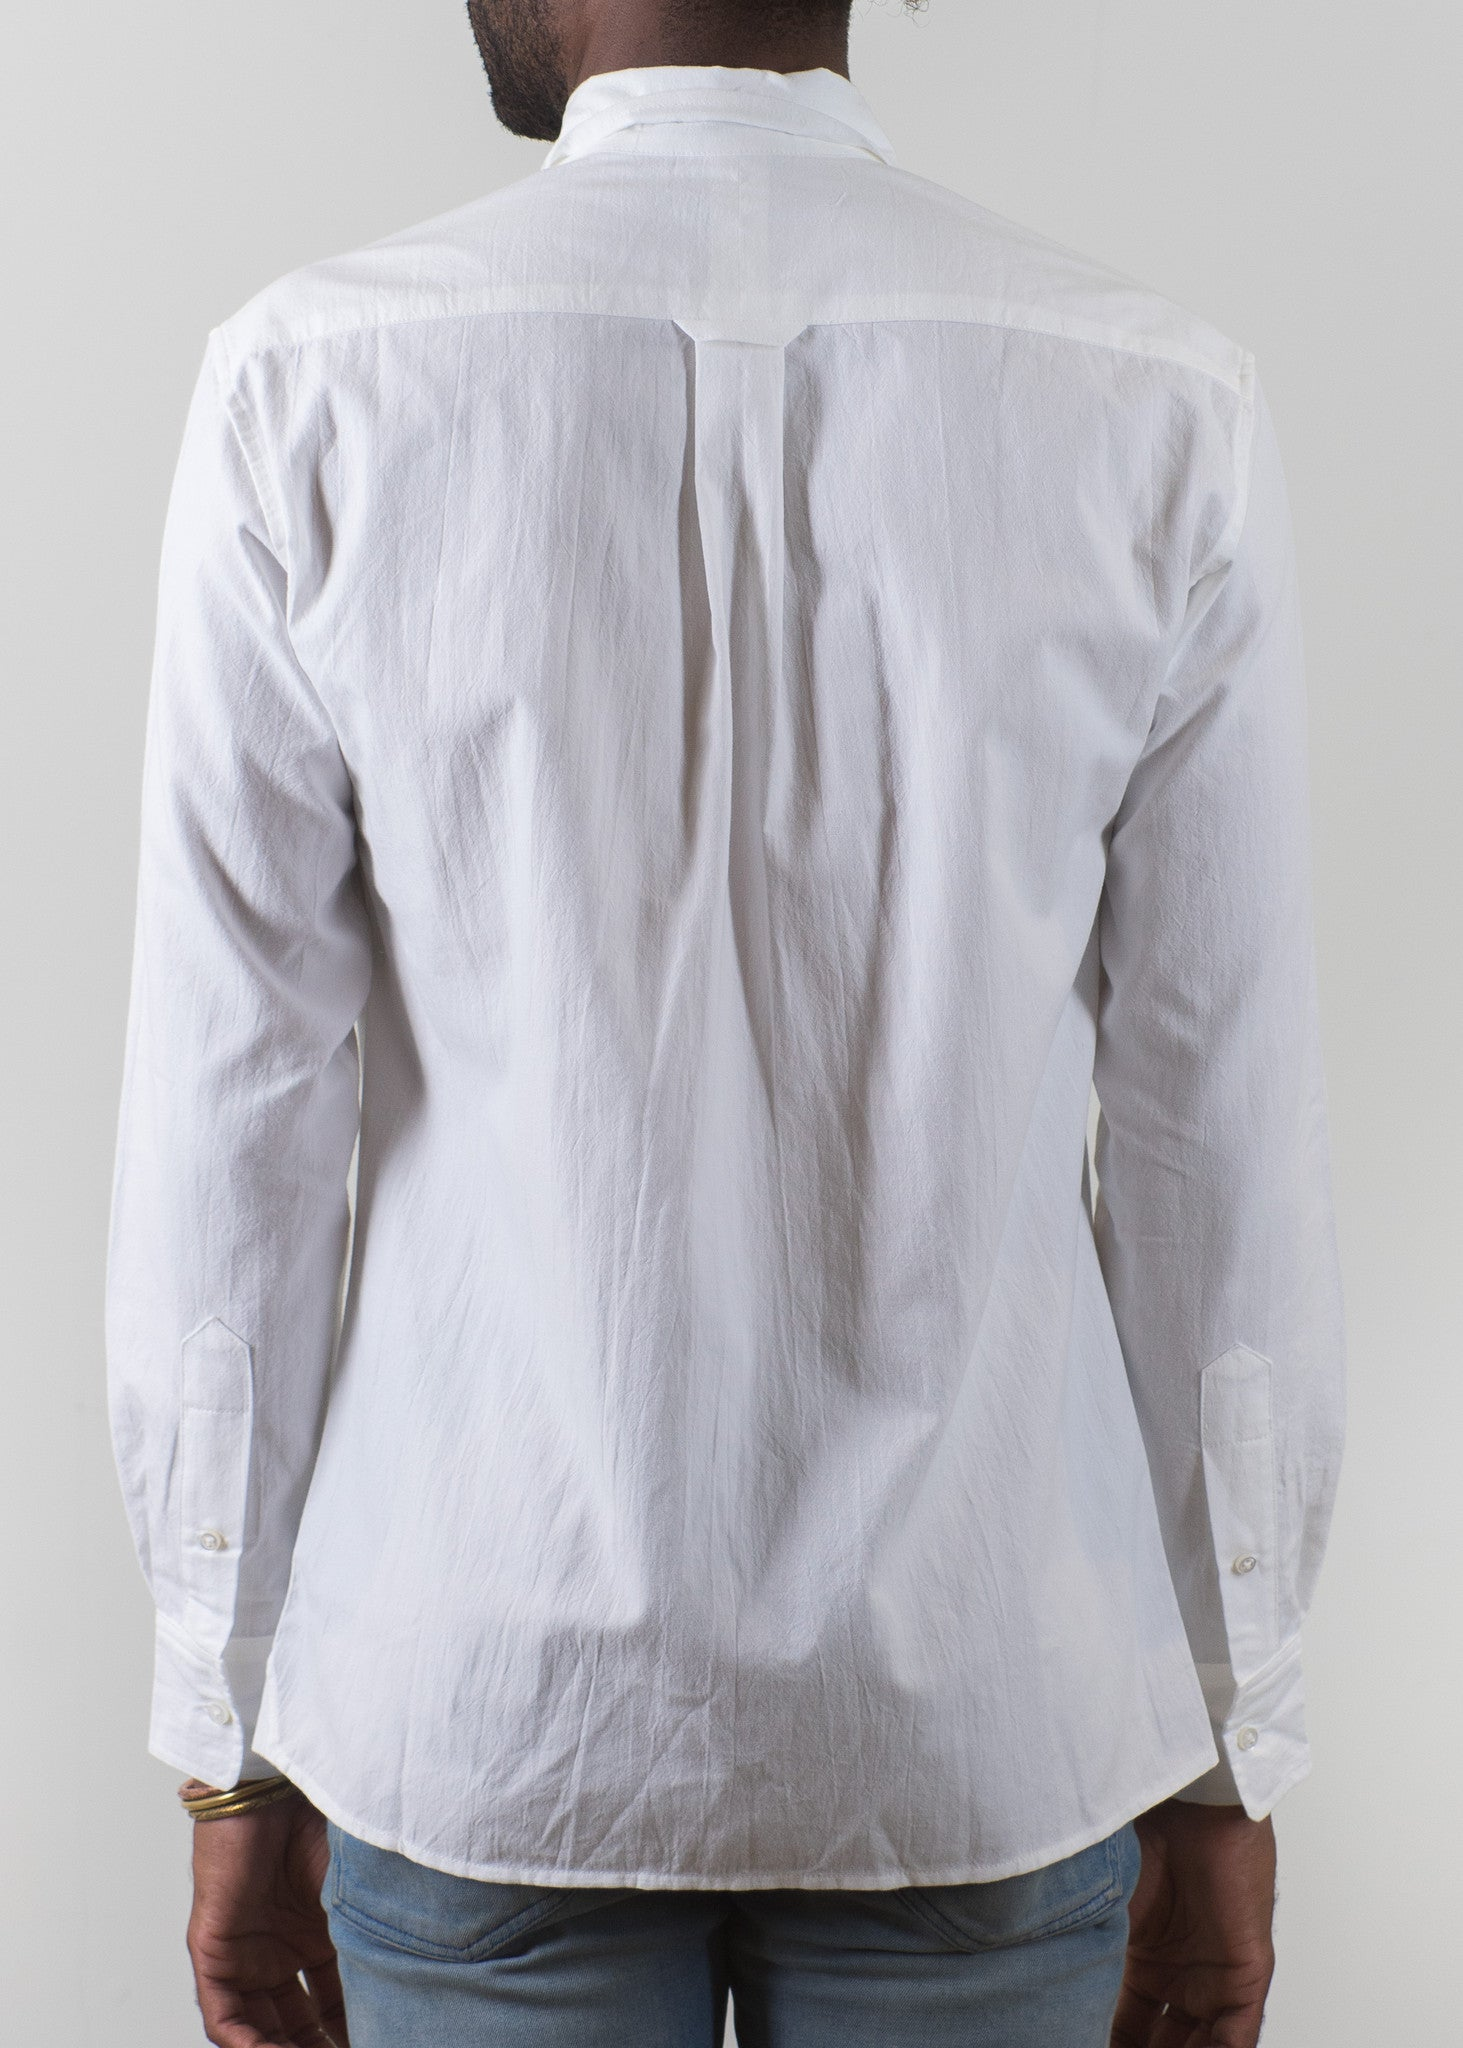 Button Down Collar Shirt - White - New Union Clothing